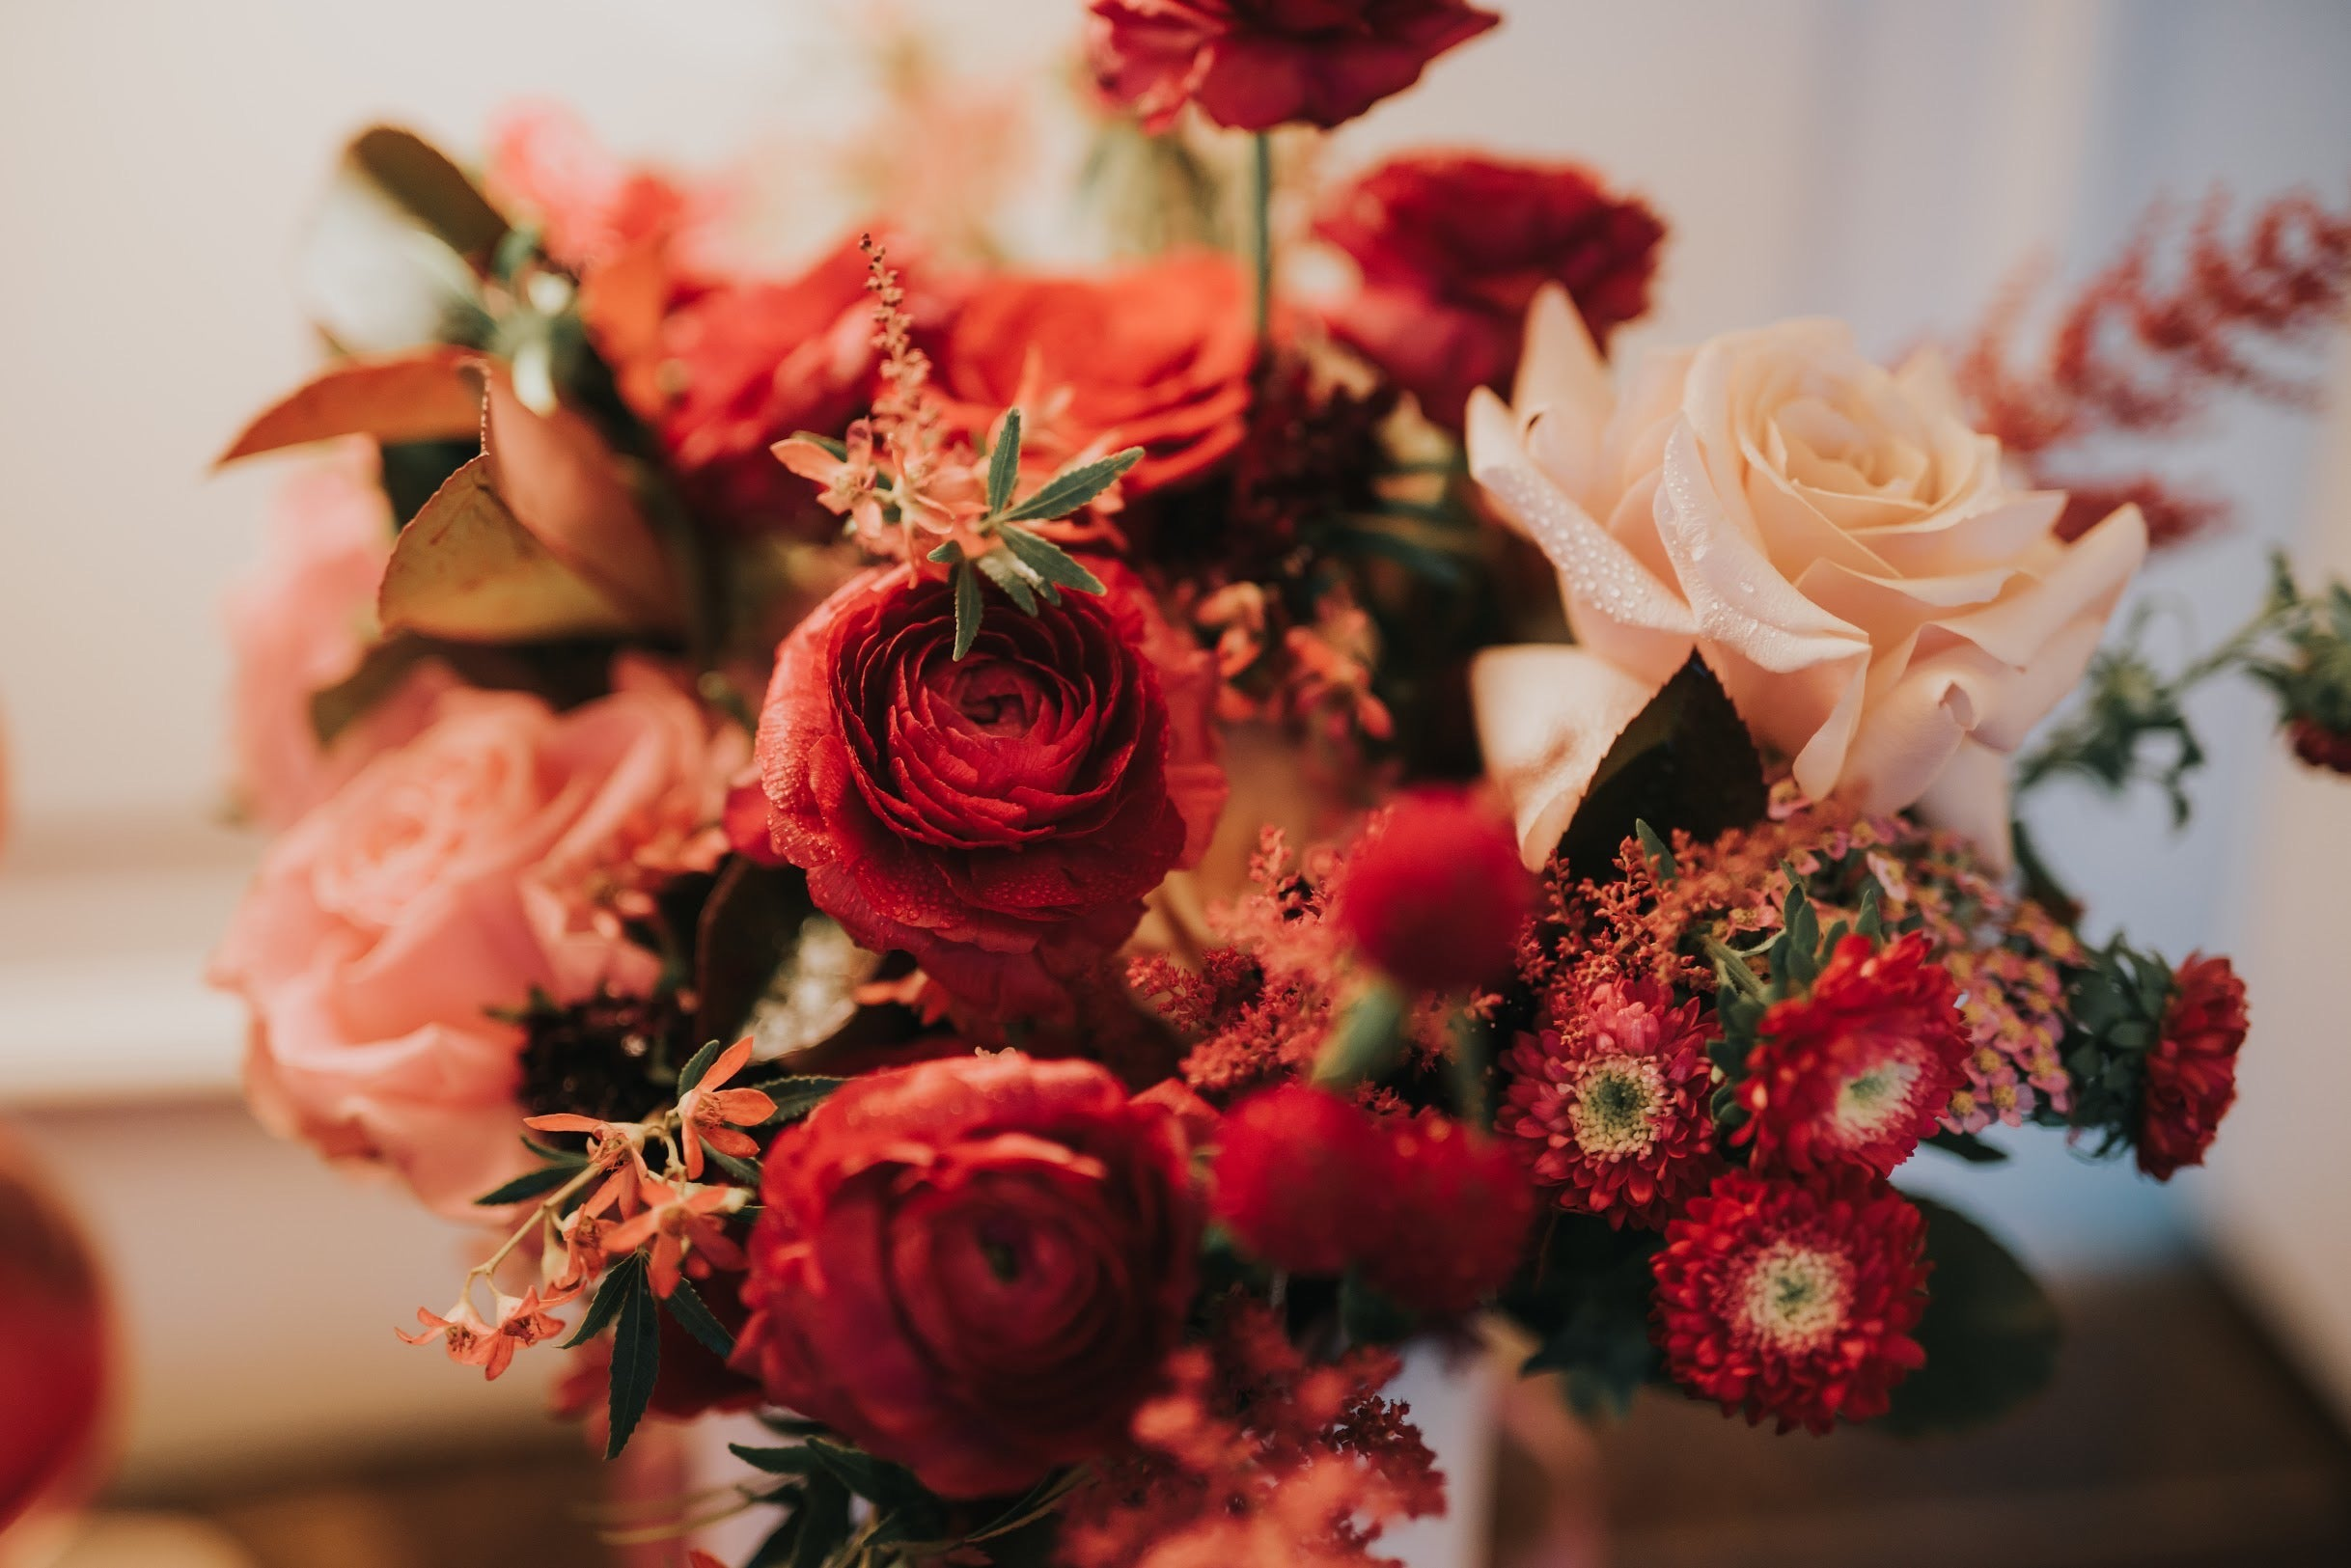 Close up of crimson bridal bouquet for church wedding ceremony with ranunculus and pink roses